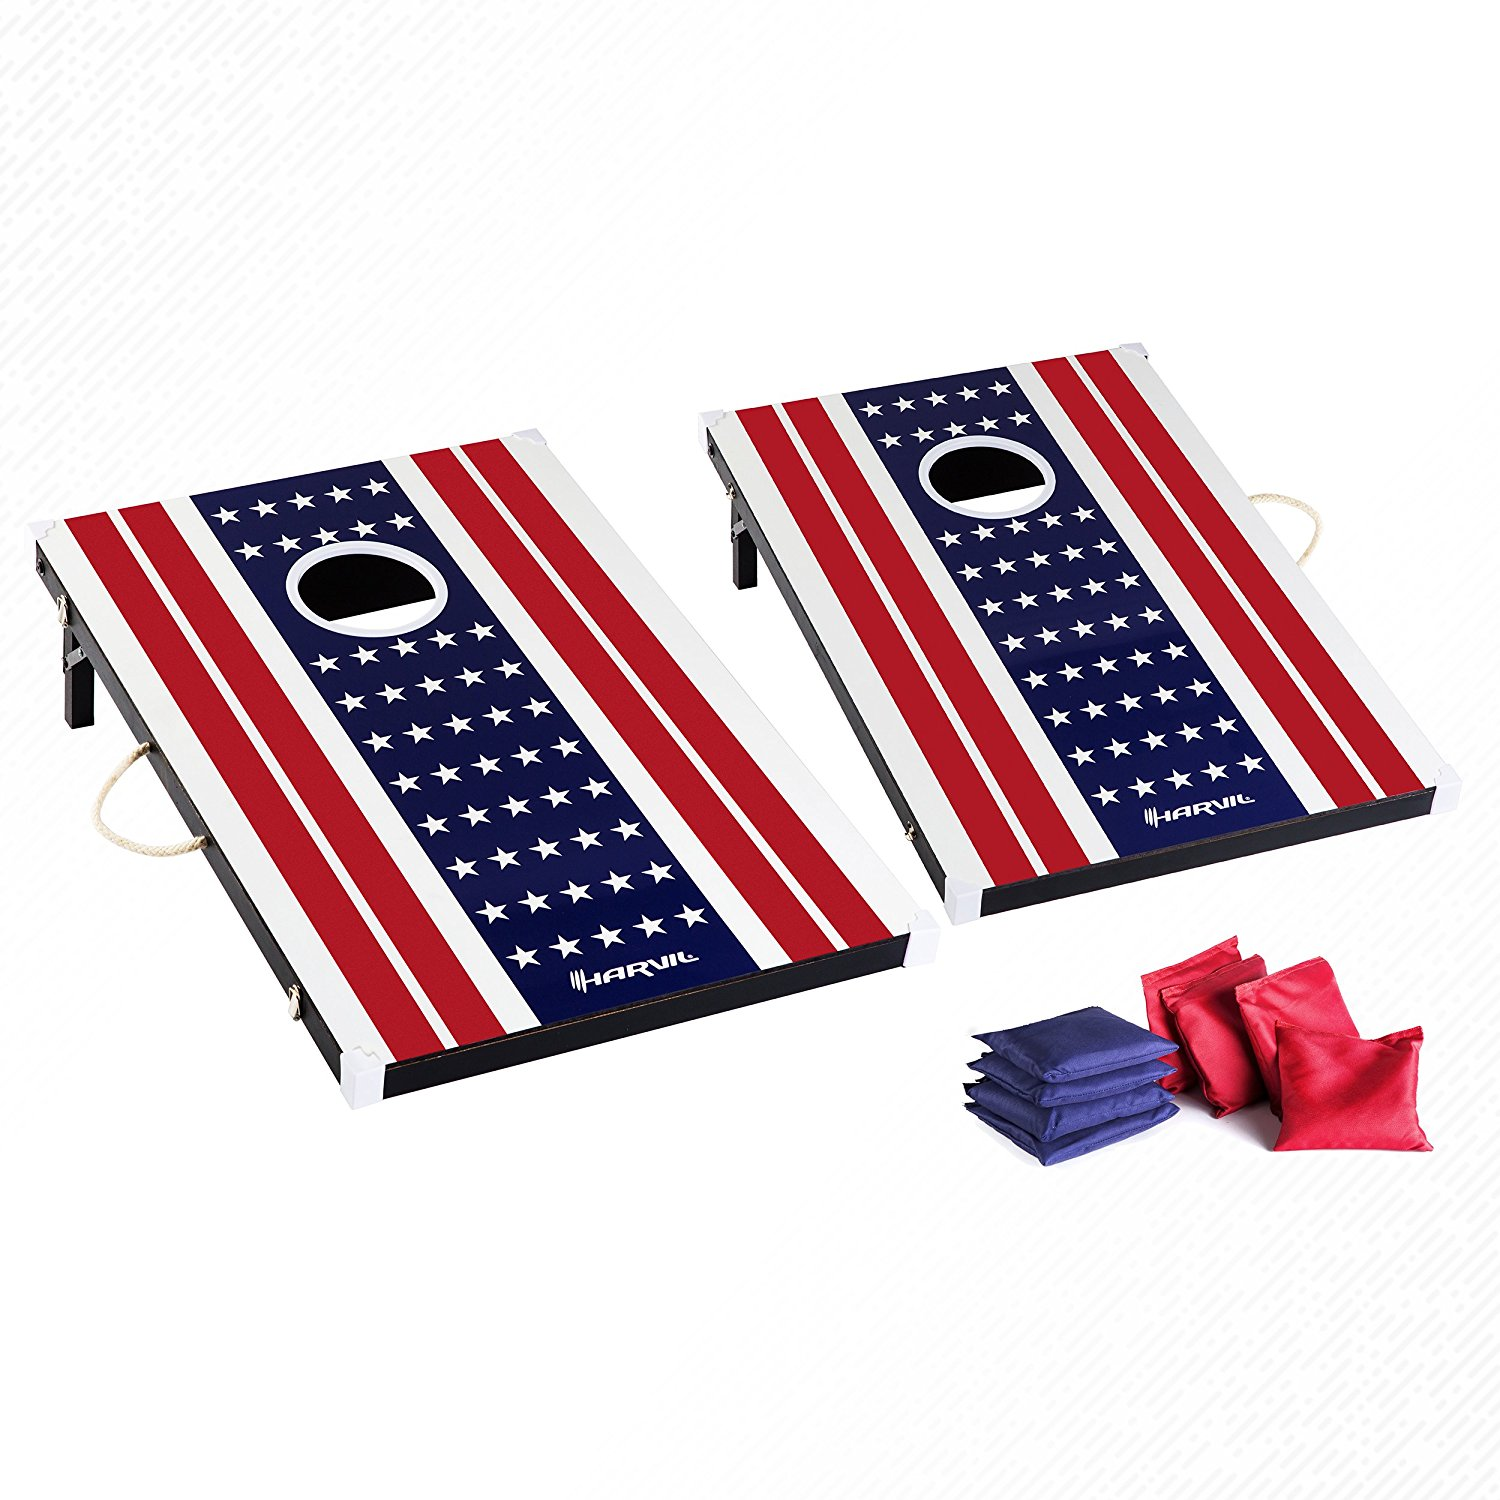 <b>Harvil Cornhole<br>Game Set</b><br>Includes 8 Double-Lined<br>Bean Bags